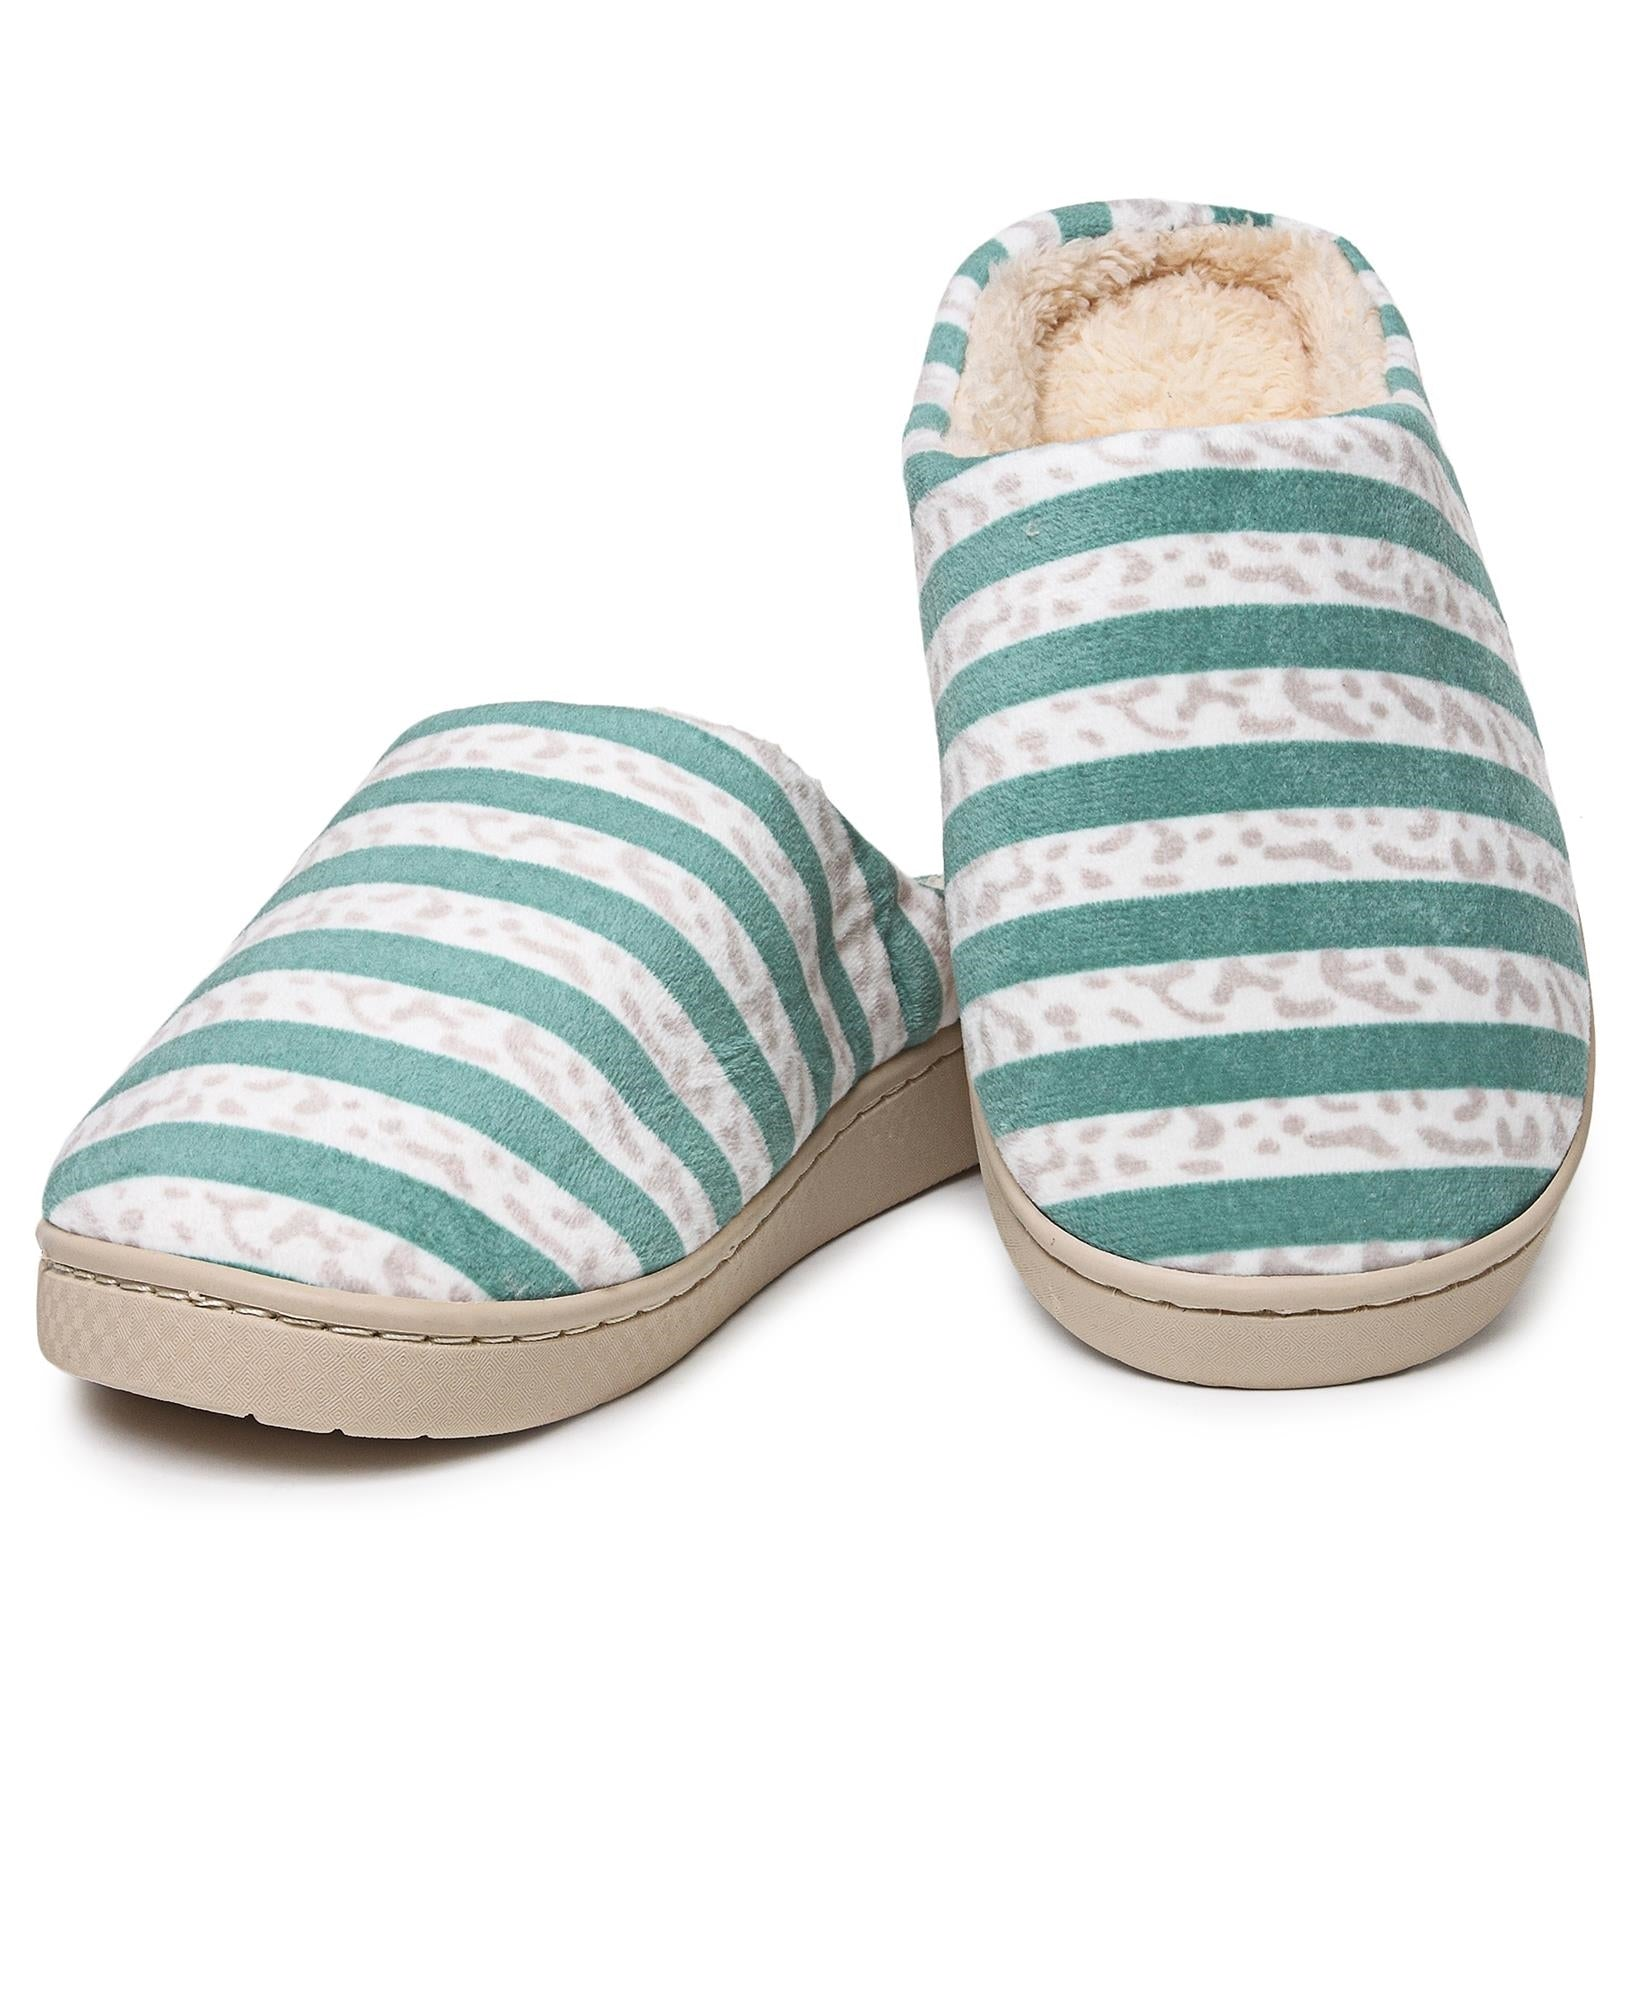 Bedroom Slippers - Green